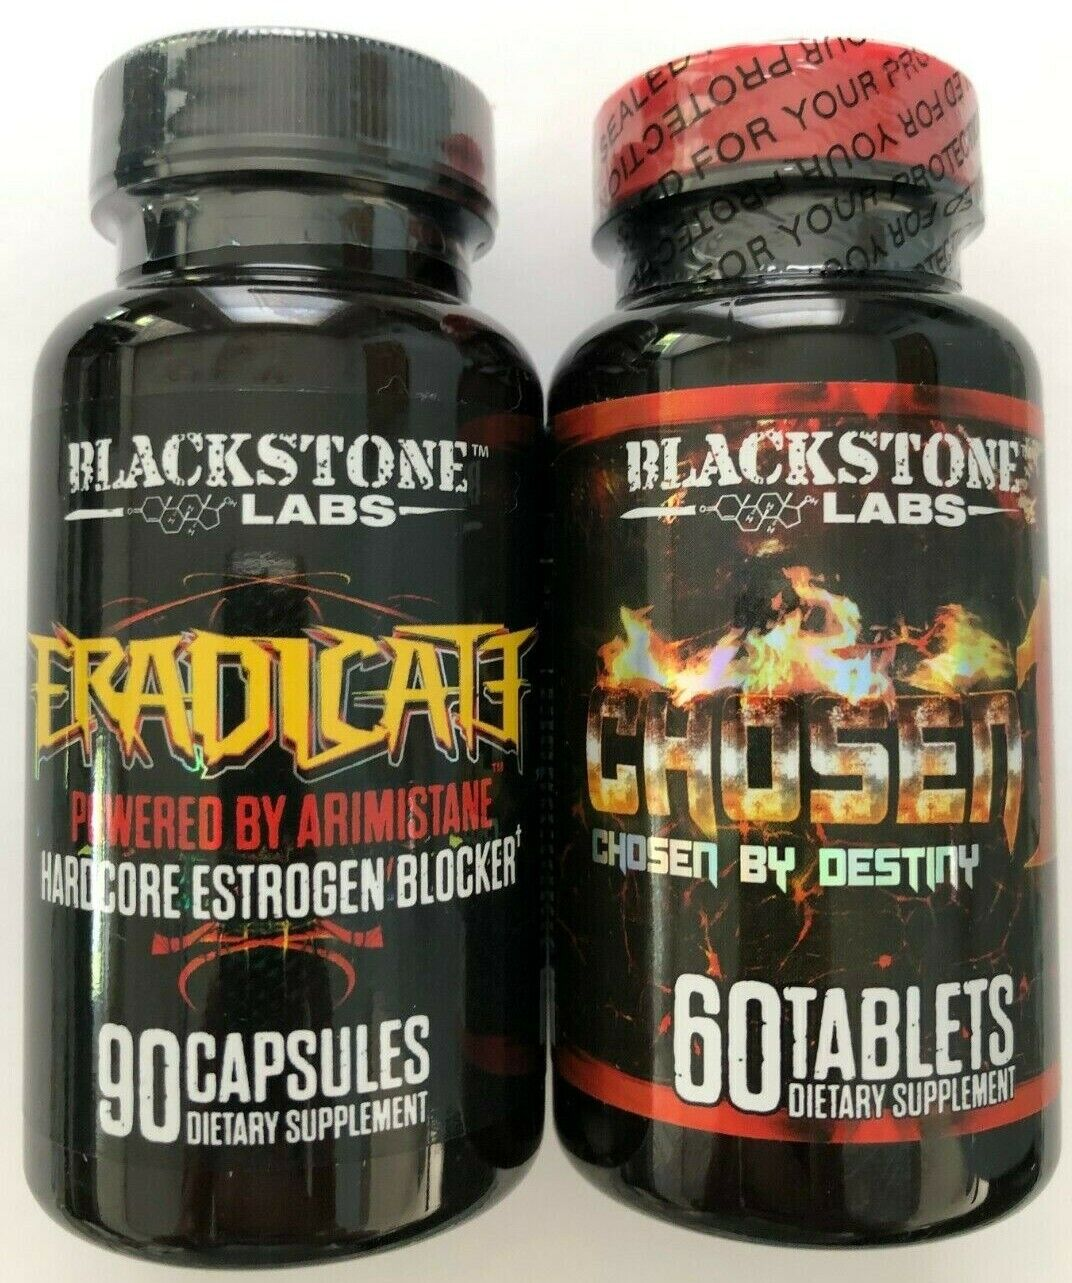 Blackstone Labs Lean Mass Gainer STACK Eradicate & Chosen 1